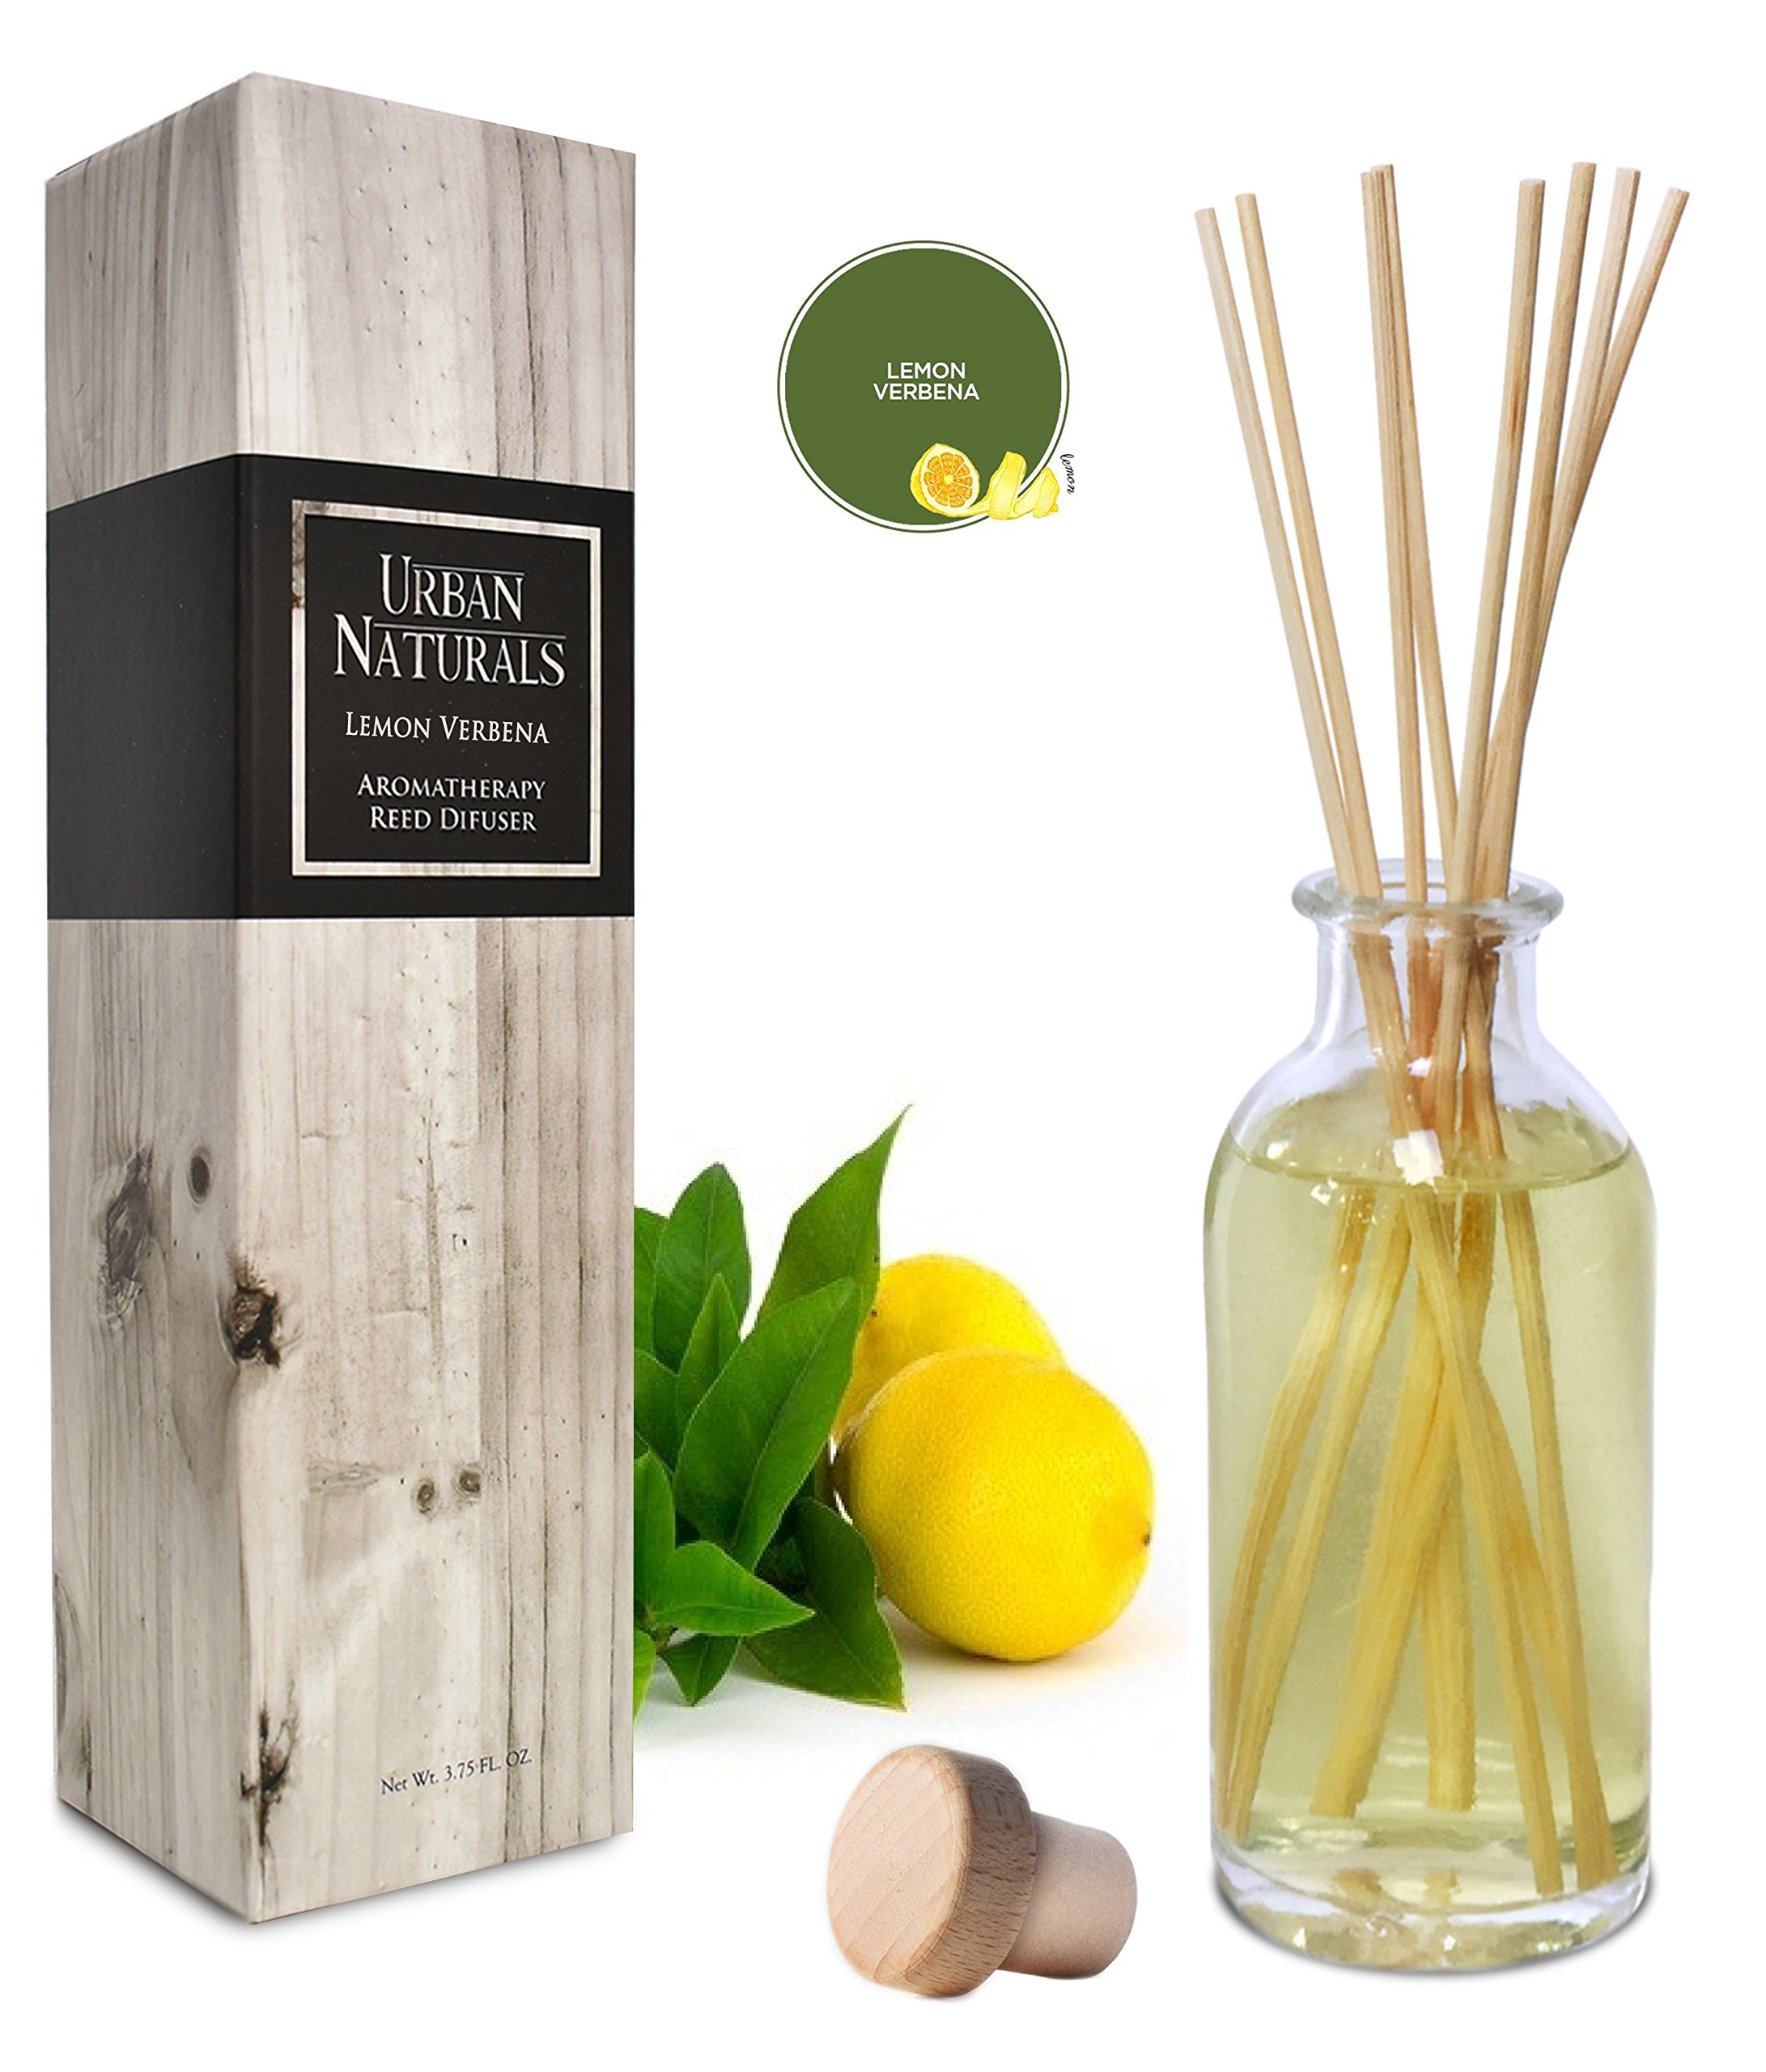 Urban Naturals Lightning Deal Lemon Verbena Reed Diffuser Oil Set Reed Sticks | Tart, Citrus Fruity Notes Bergamot & Greens | Makes a Cheerful Gift Idea | Made in The USA